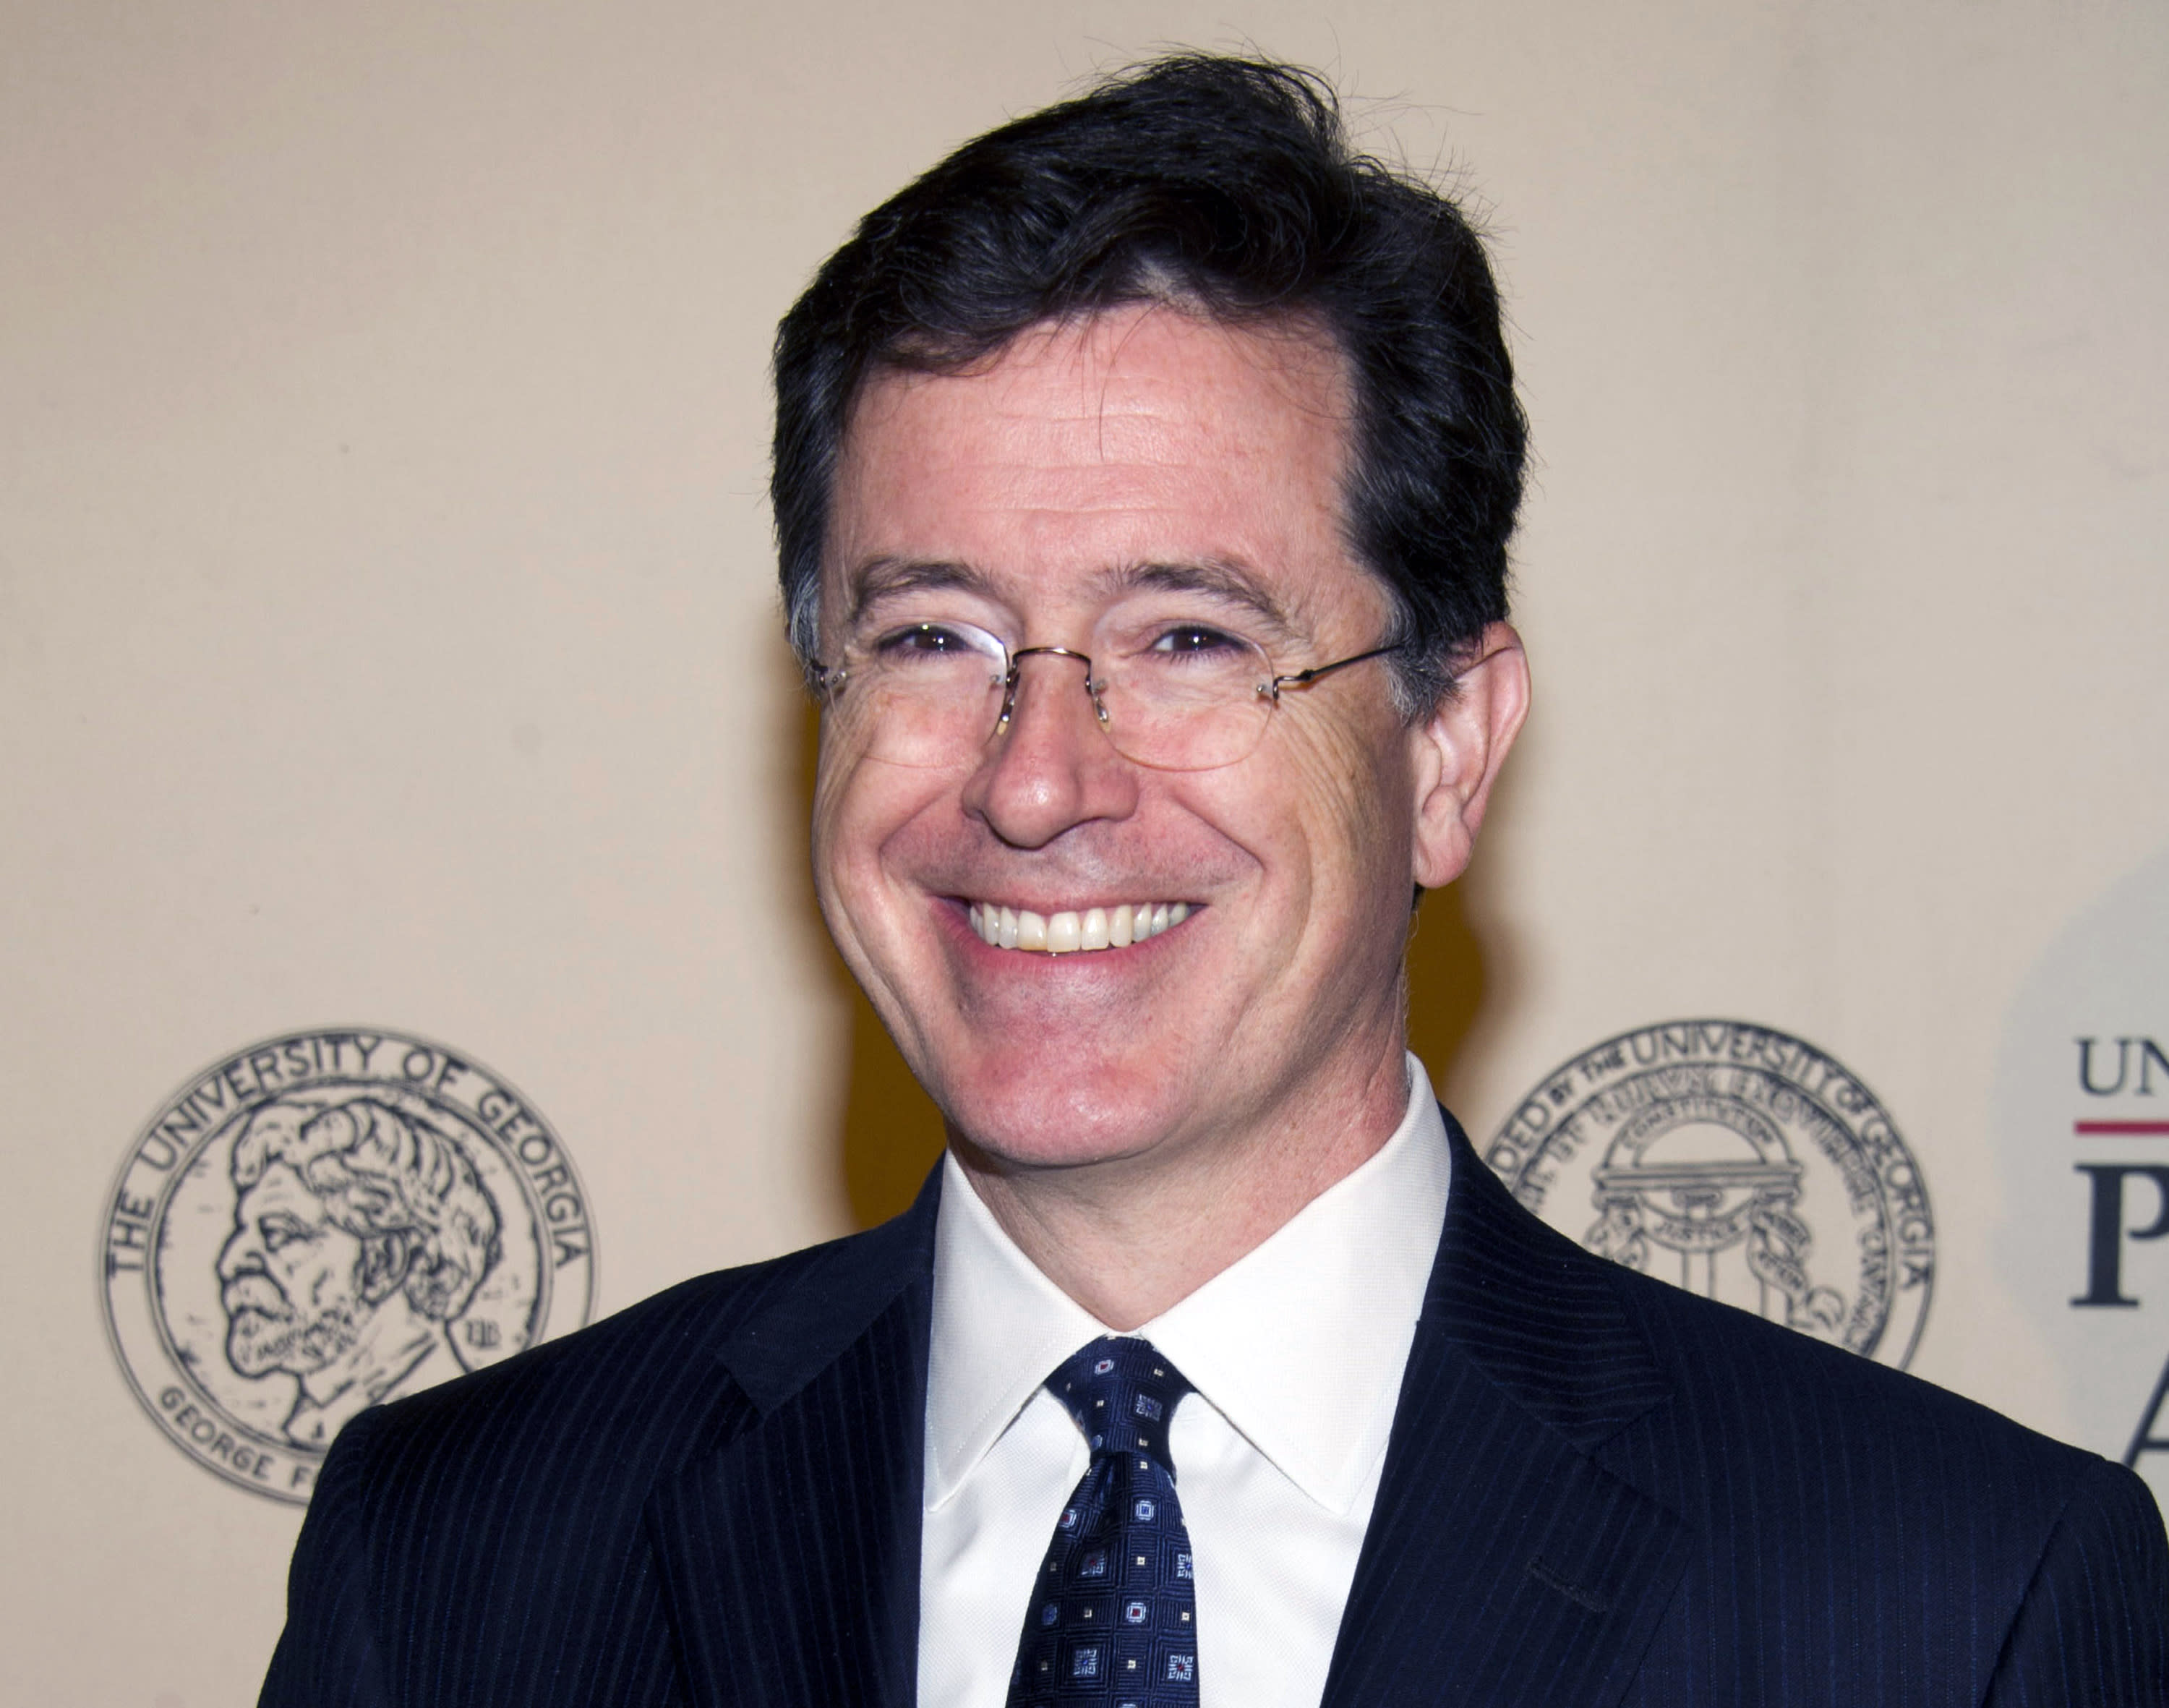 """FILE - In this May 21, 2012 file photo, TV personality and author Stephen Colbert attends the 71st Annual Peabody Awards in New York. Stephen Colbert says he loves the Roman Catholic Church no matter its human flaws. The host of """"The Colbert Report"""" talked about his faith Friday night, Sept. 14, 2012 at an event at Fordham University in New York. (AP Photo/Charles Sykes, File)"""